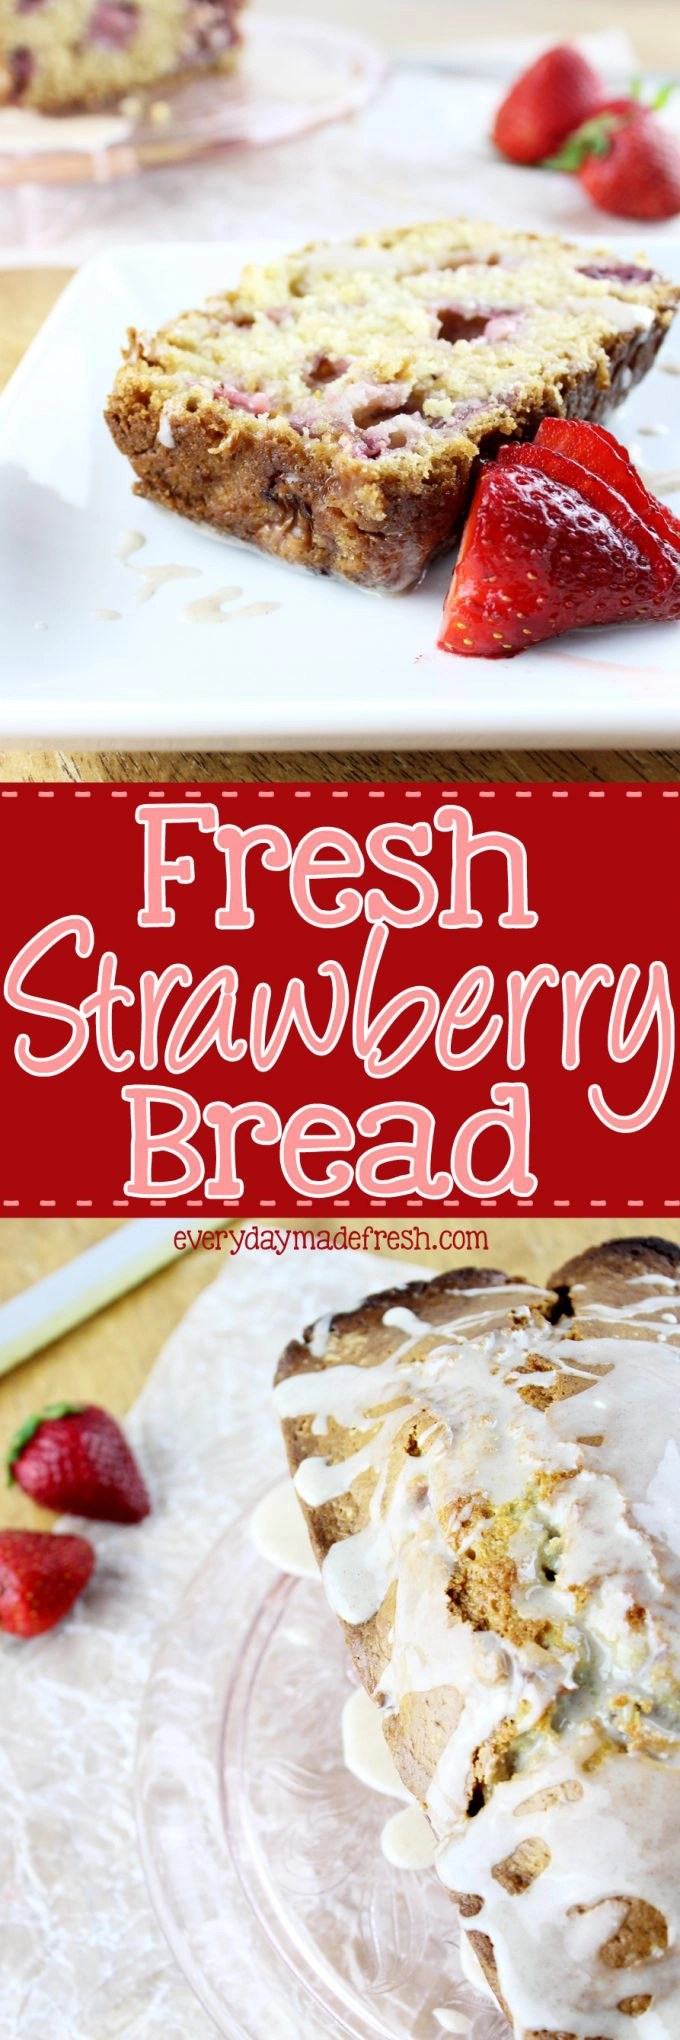 This Fresh Strawberry Bread will be one of your favorites. This quick bread is made with fresh strawberries, and topped with a cinnamon glaze.   EverydayMadeFresh.com